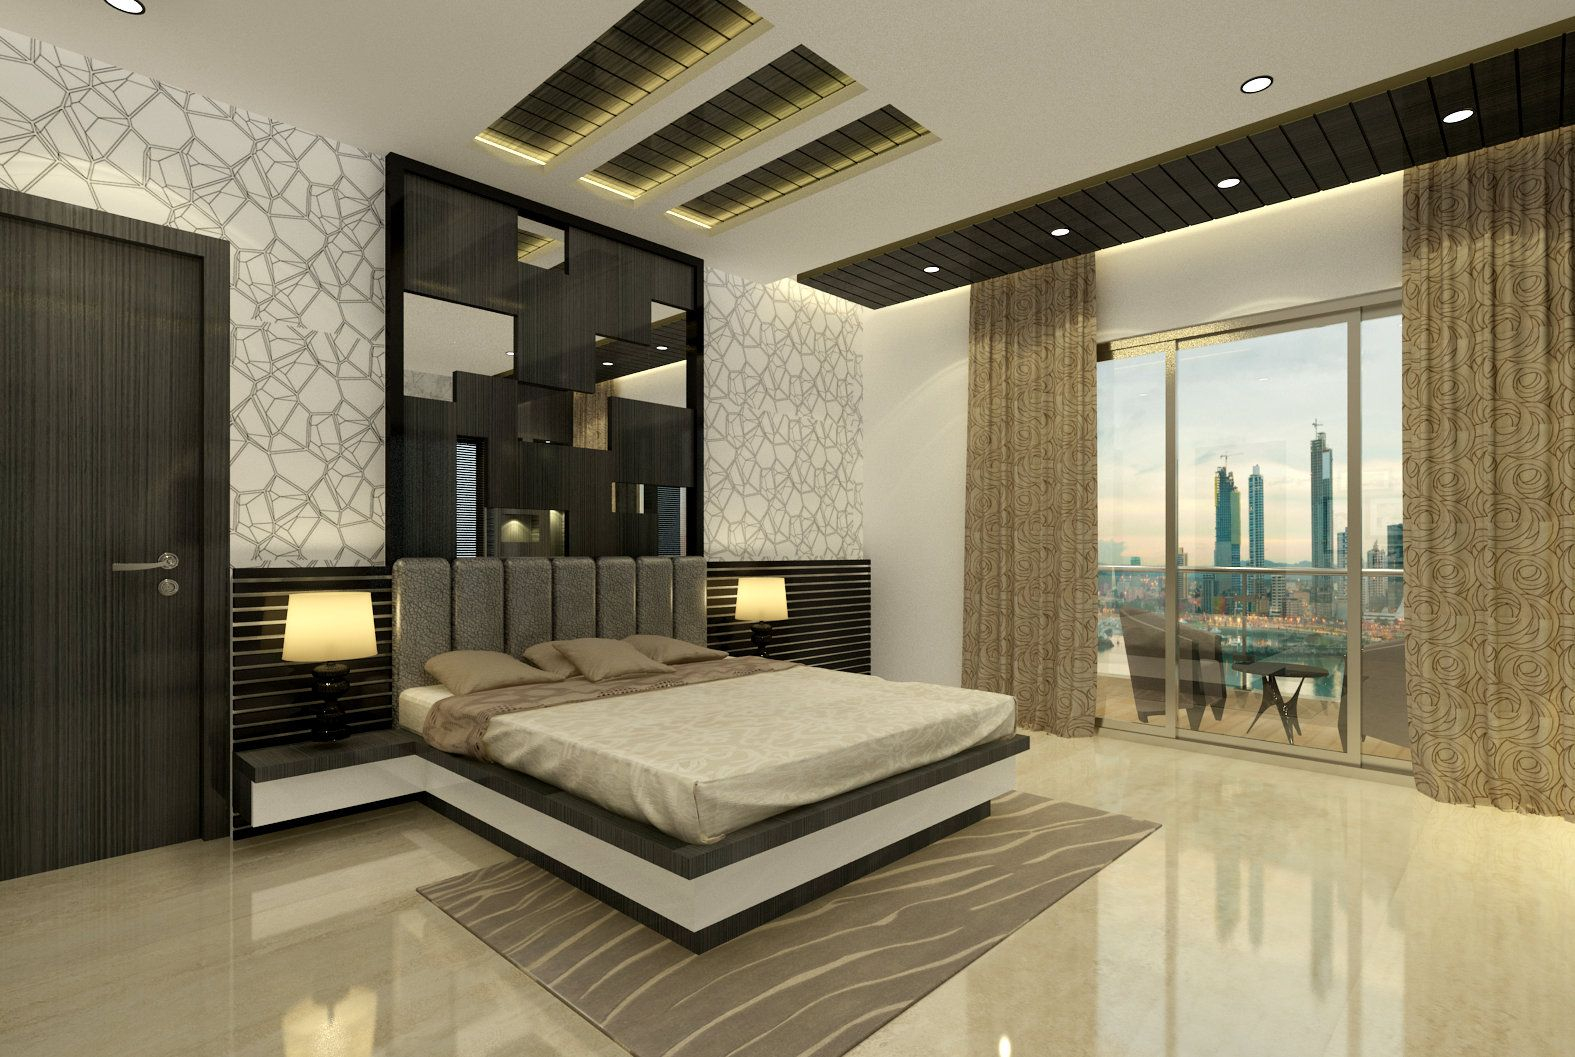 Master Bedroom We Design And Execute The Same Contact Us For All Interior Work Bedroom Furniture Design Modern Bedroom Interior Bedroom Bed Design